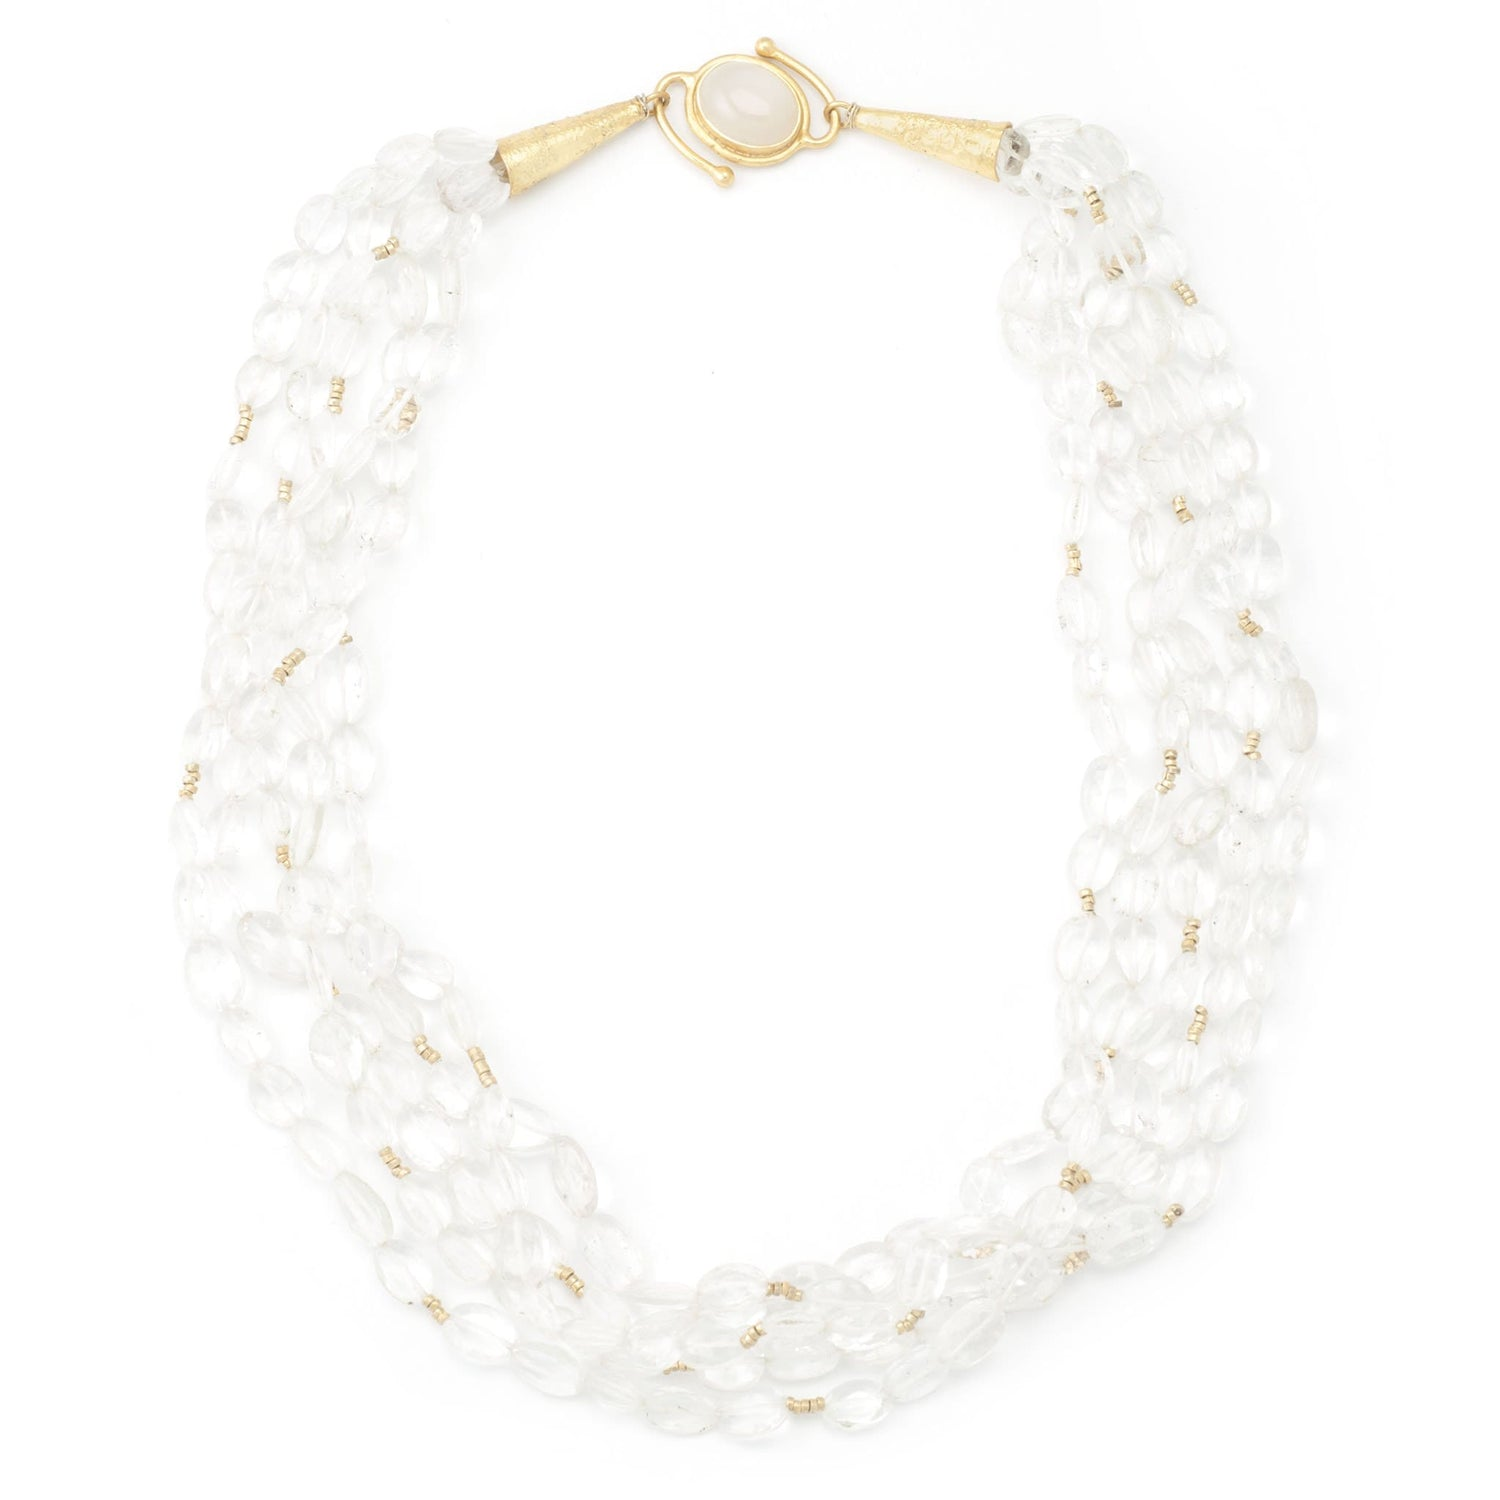 Rock Crystal  & Moonstone Clasp Necklace - Curated Los Angeles